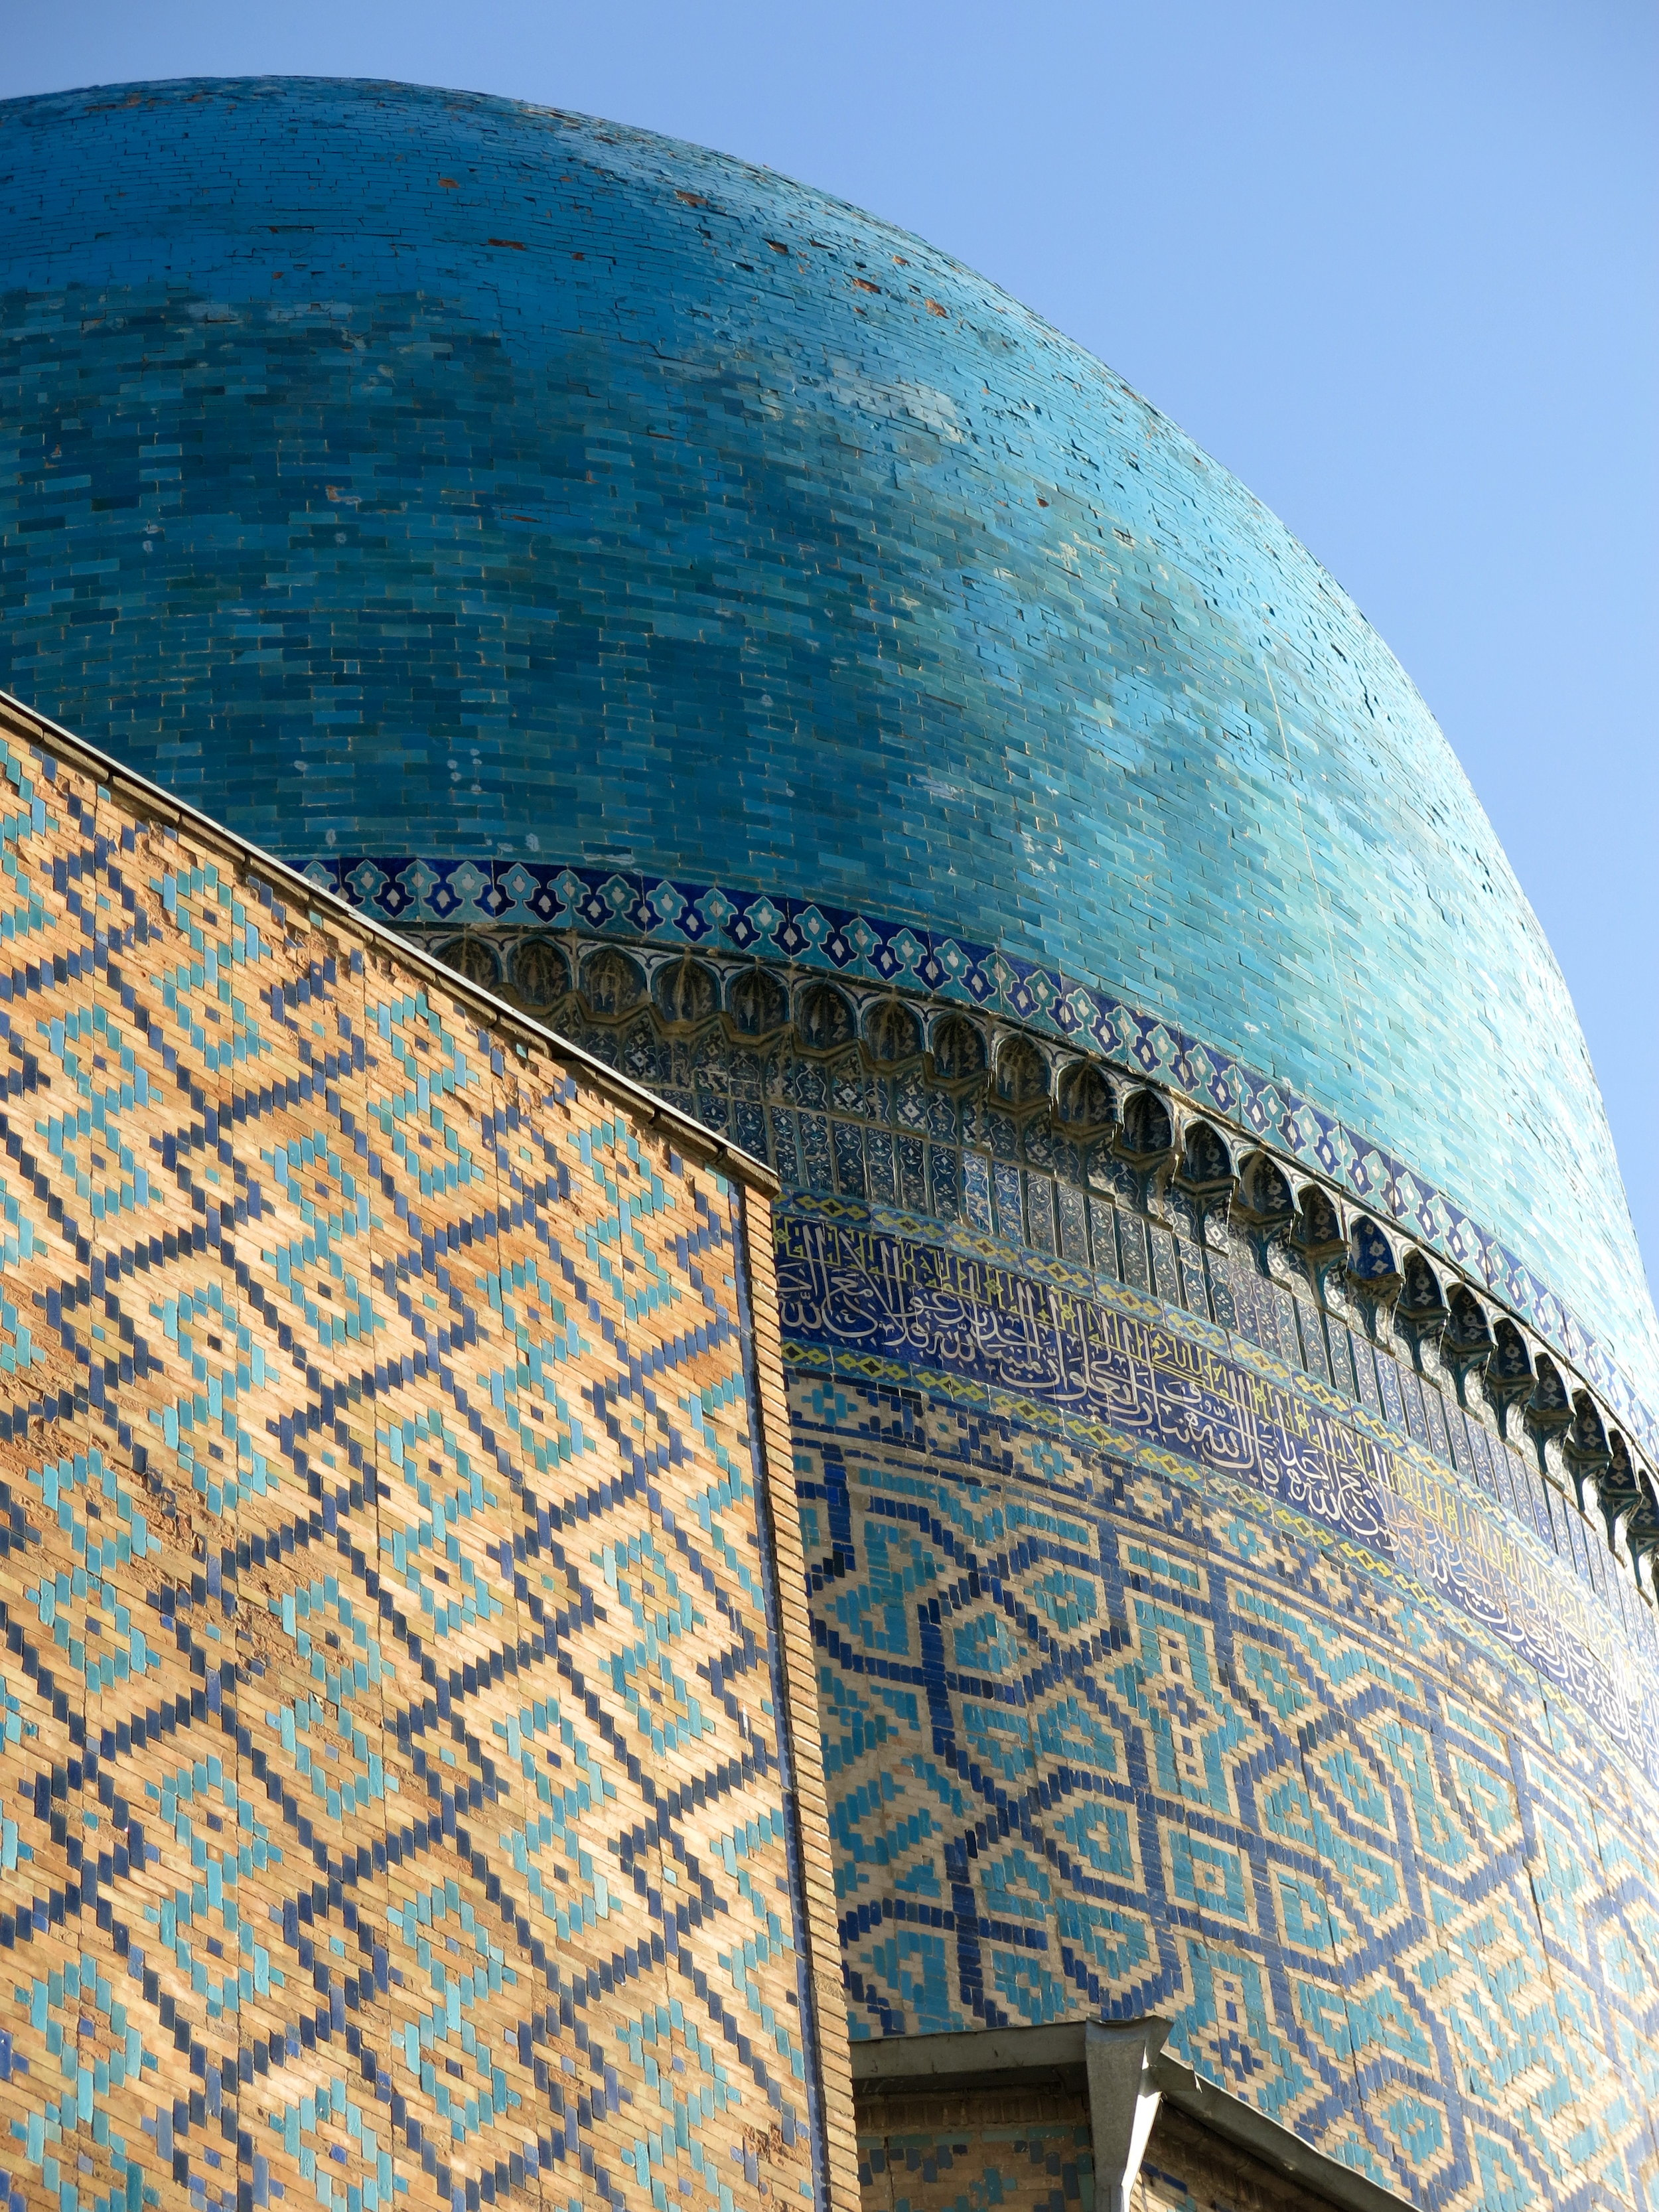 The blue dome of the Tilla-Kari mosque from outside